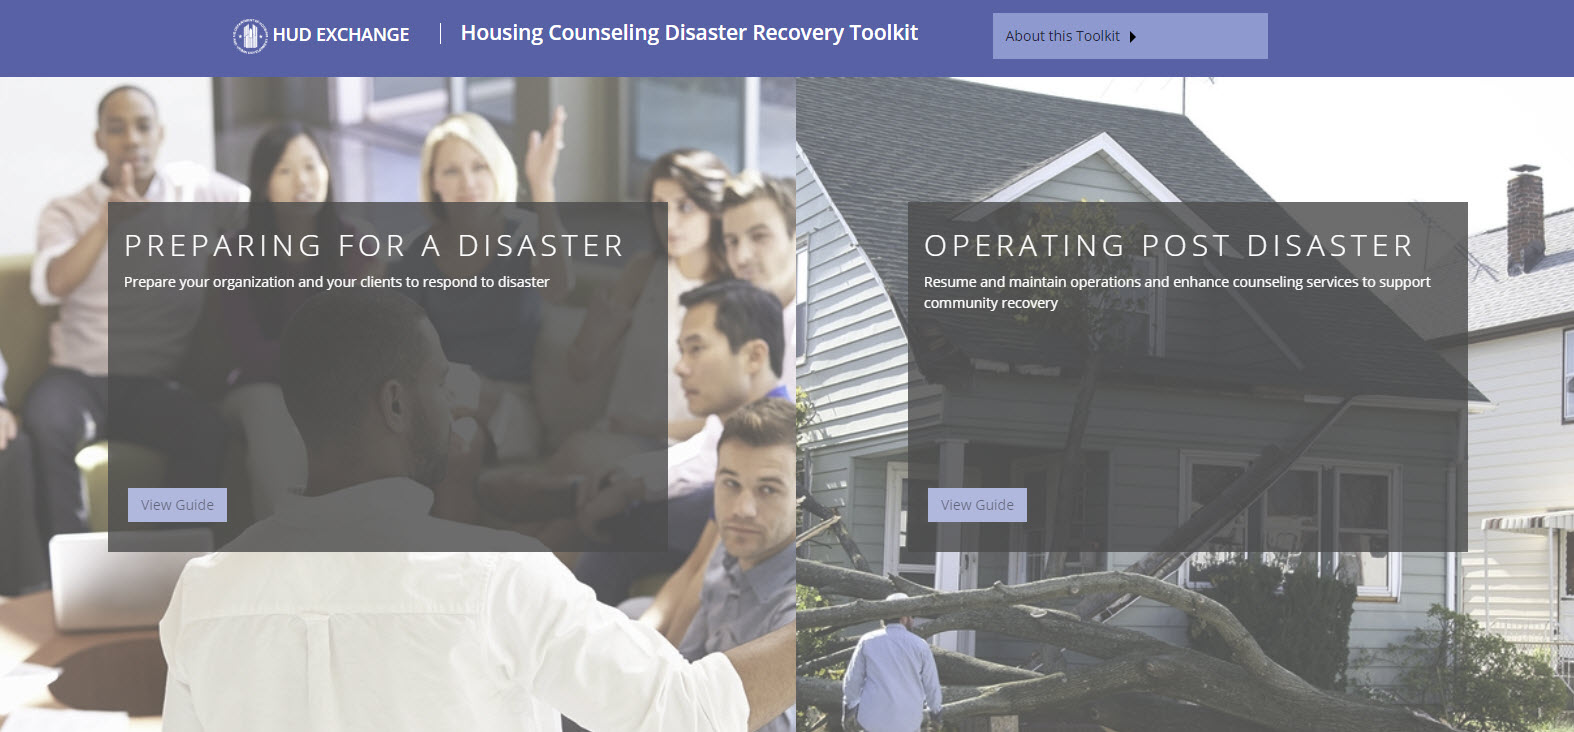 Housing Counseling Disaster Recovery Toolkit